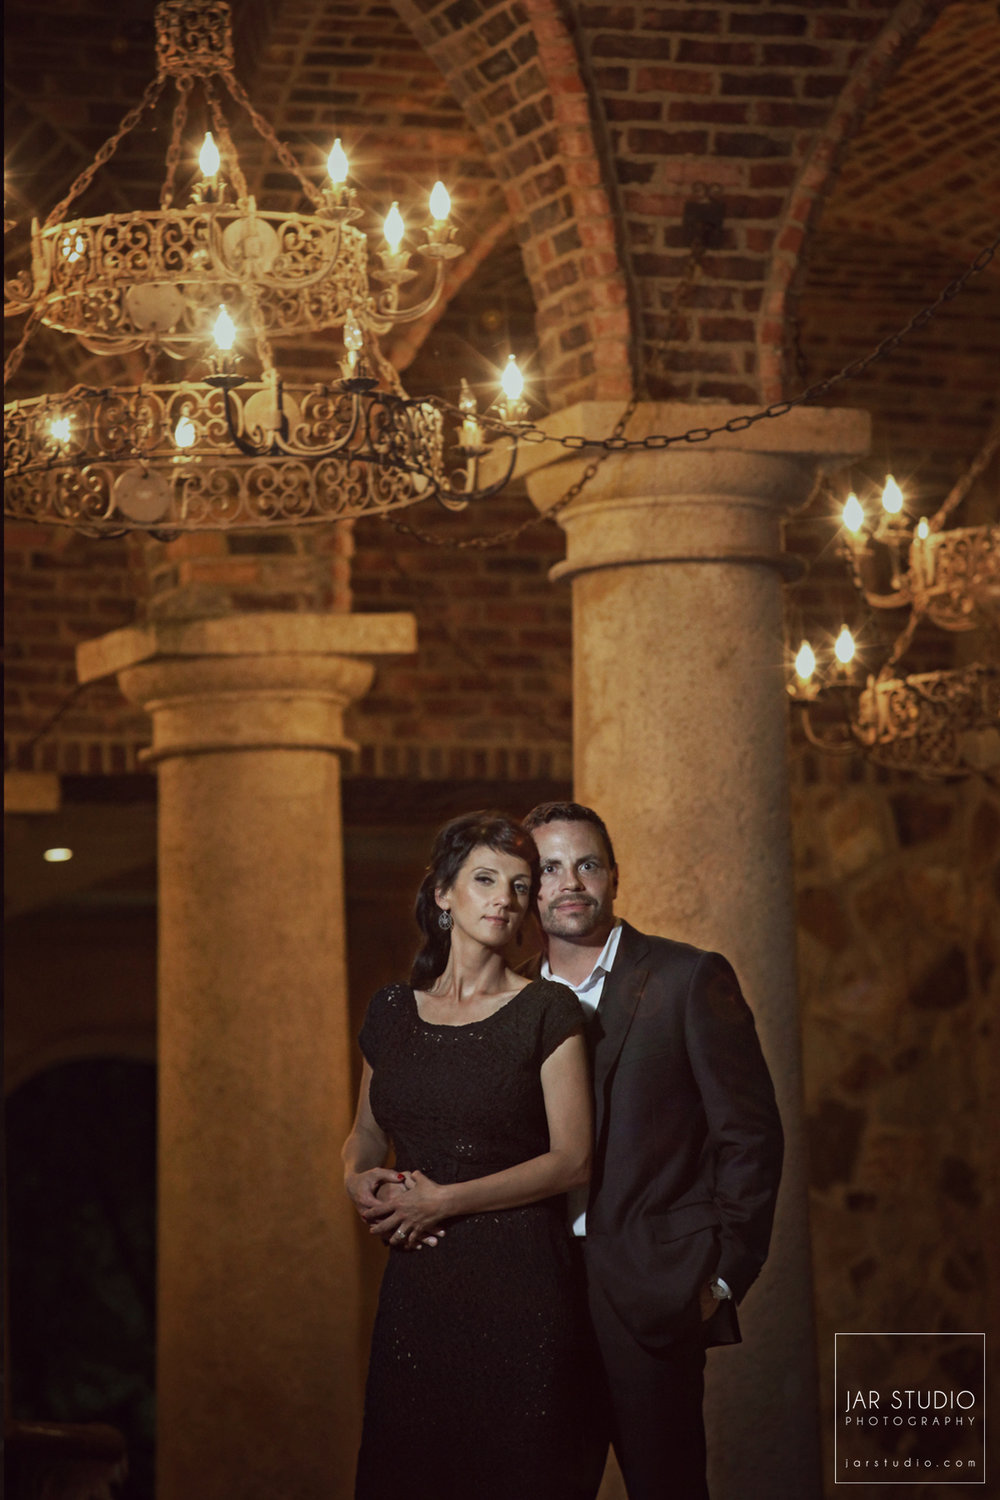 23-beautiful-bella-collina-couple-jarstudio.jpg